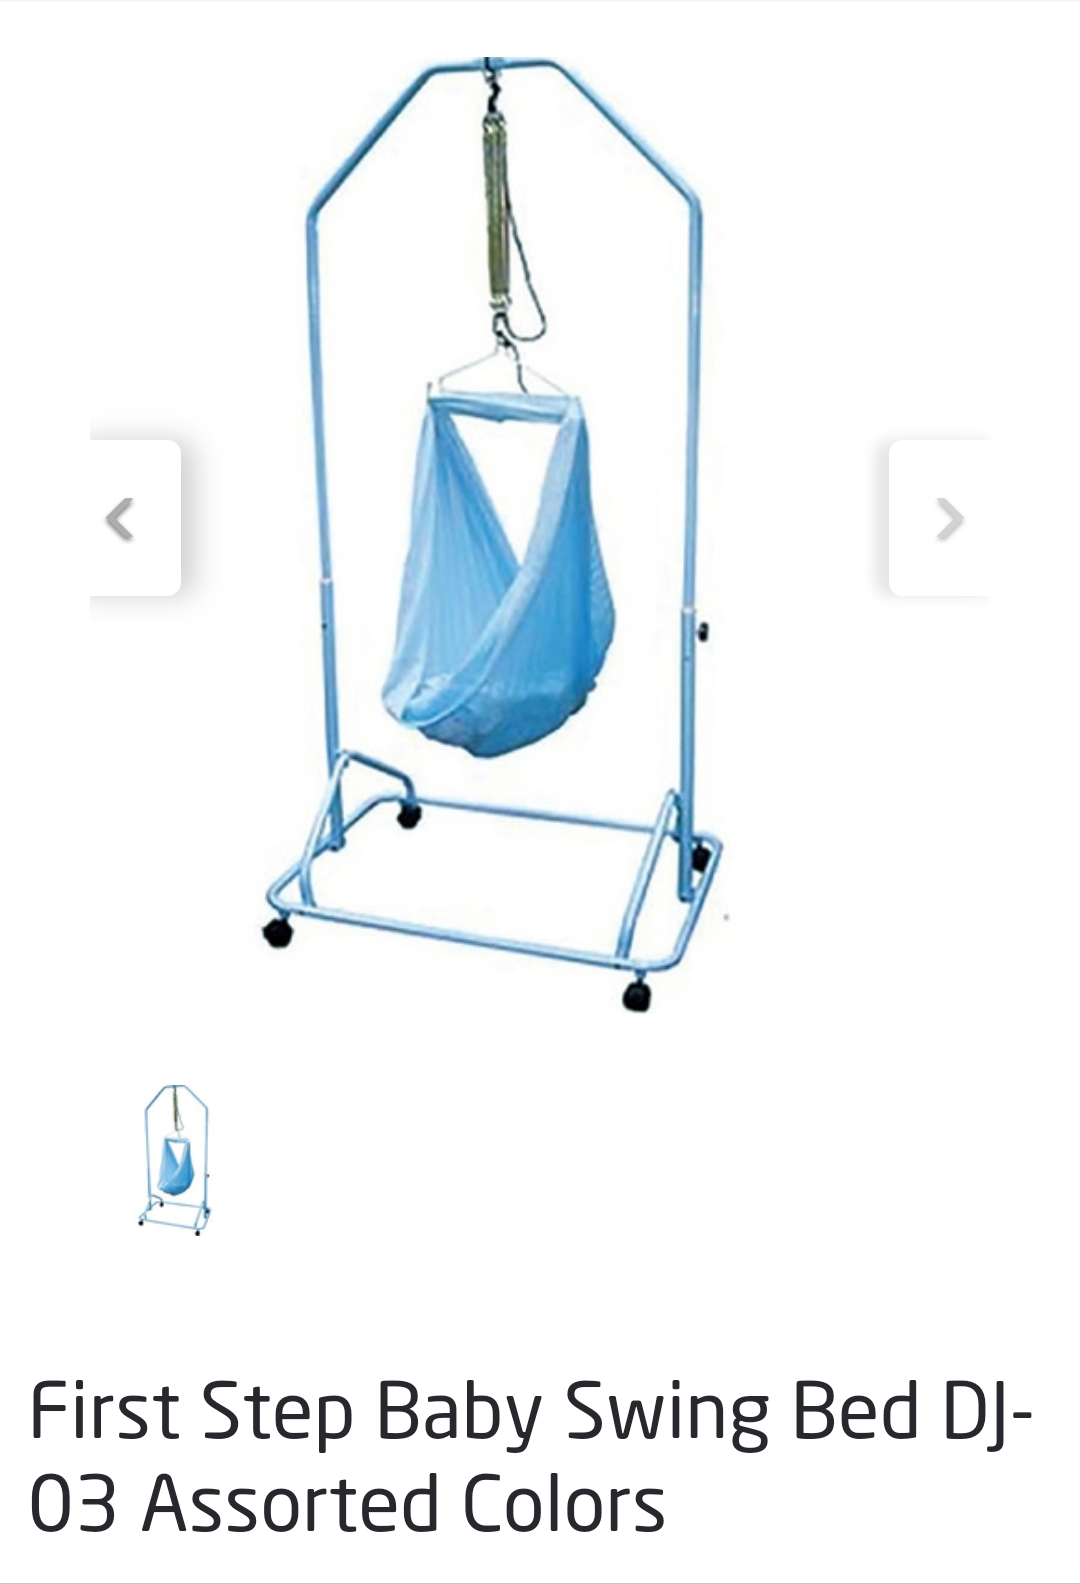 First step baby swing bed (cradle)